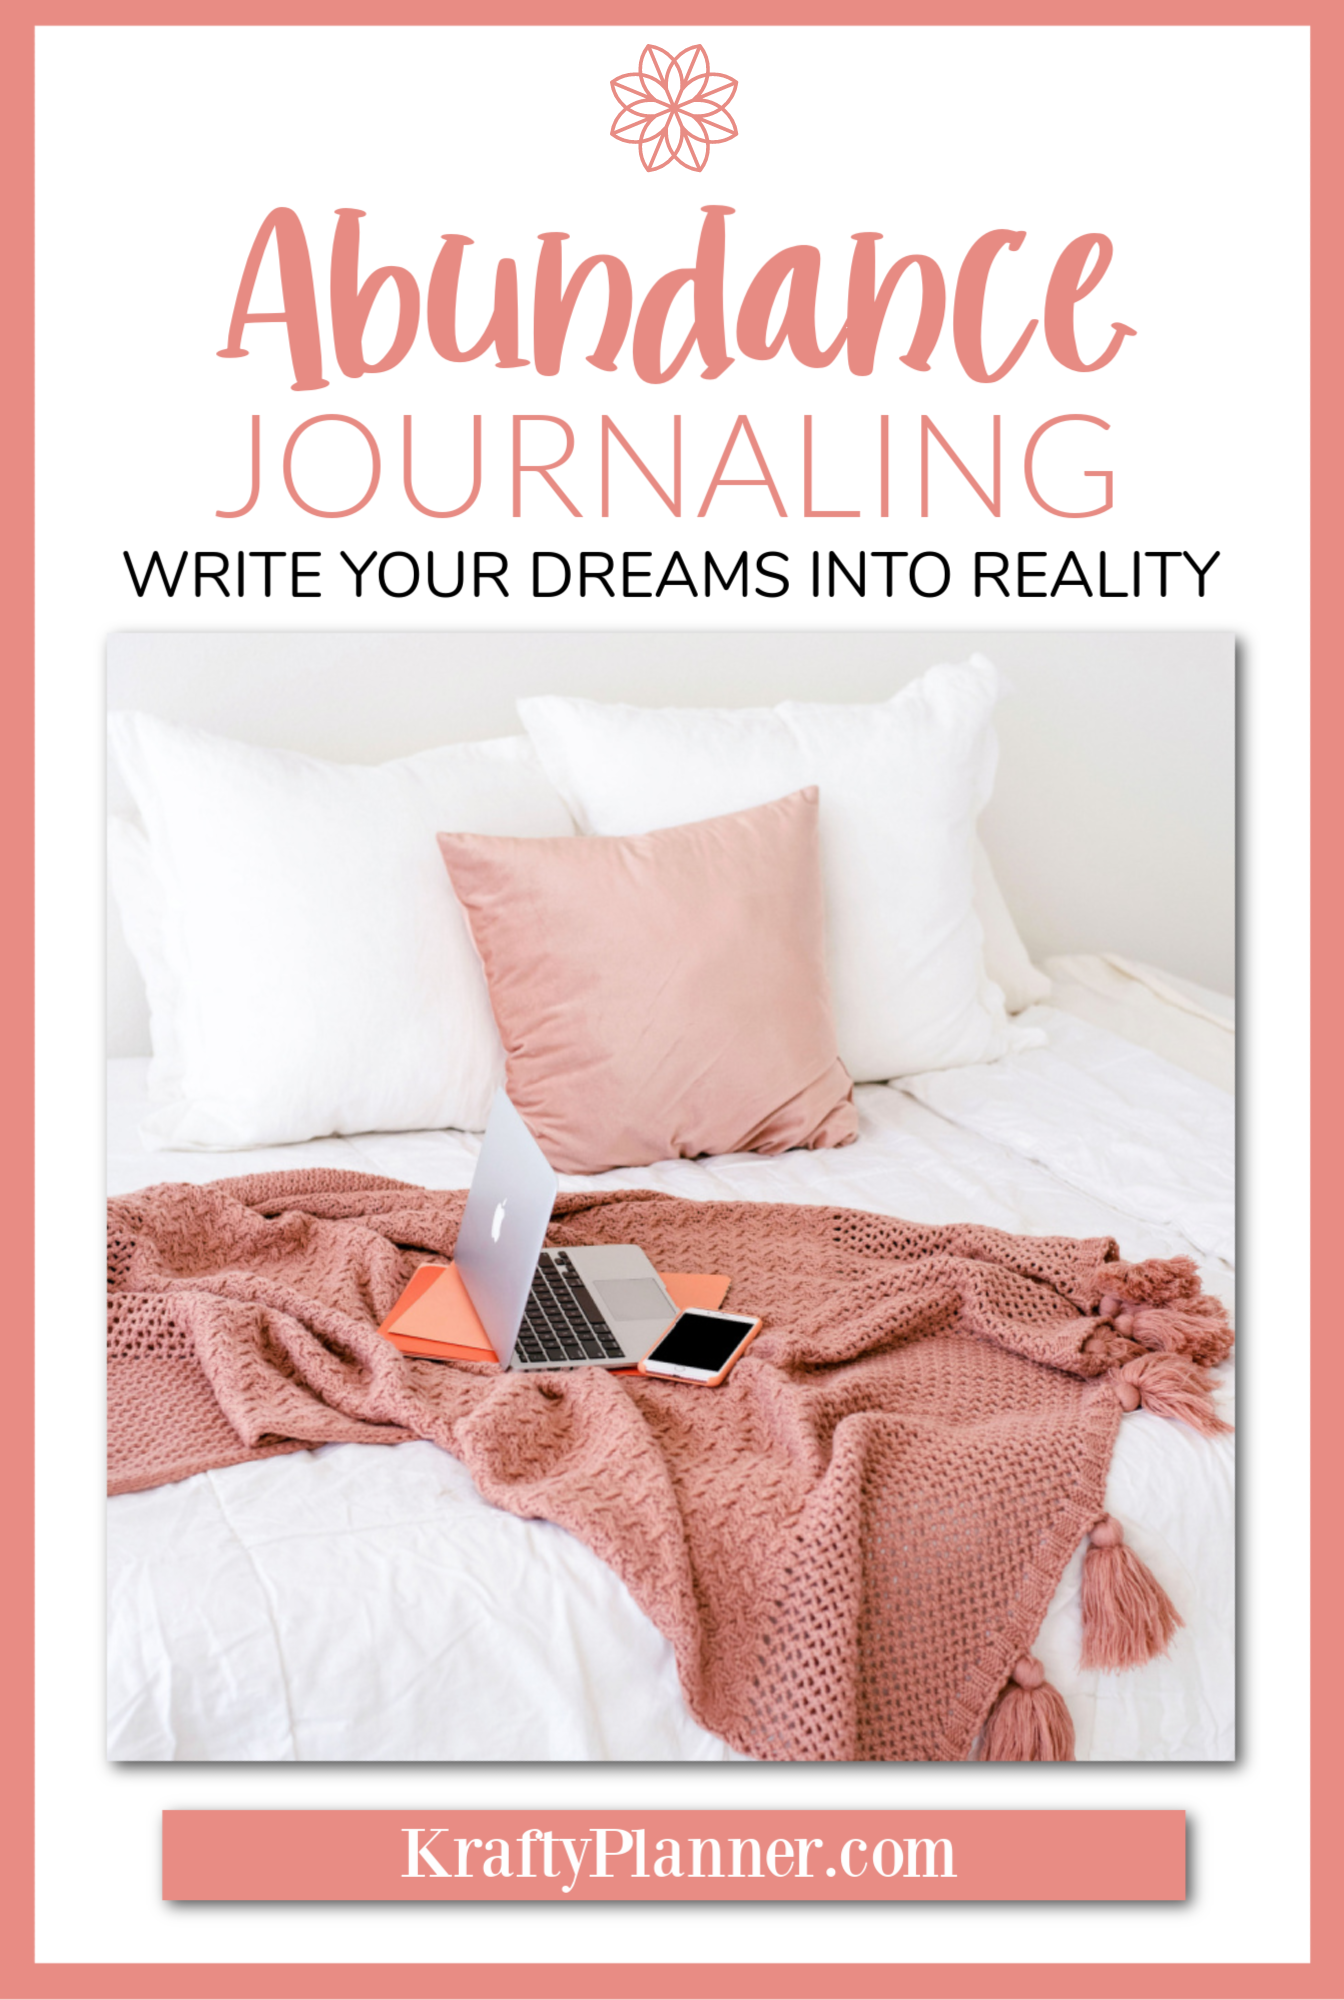 Abundance Journaling - Write your dreams into reality PIN 2.png